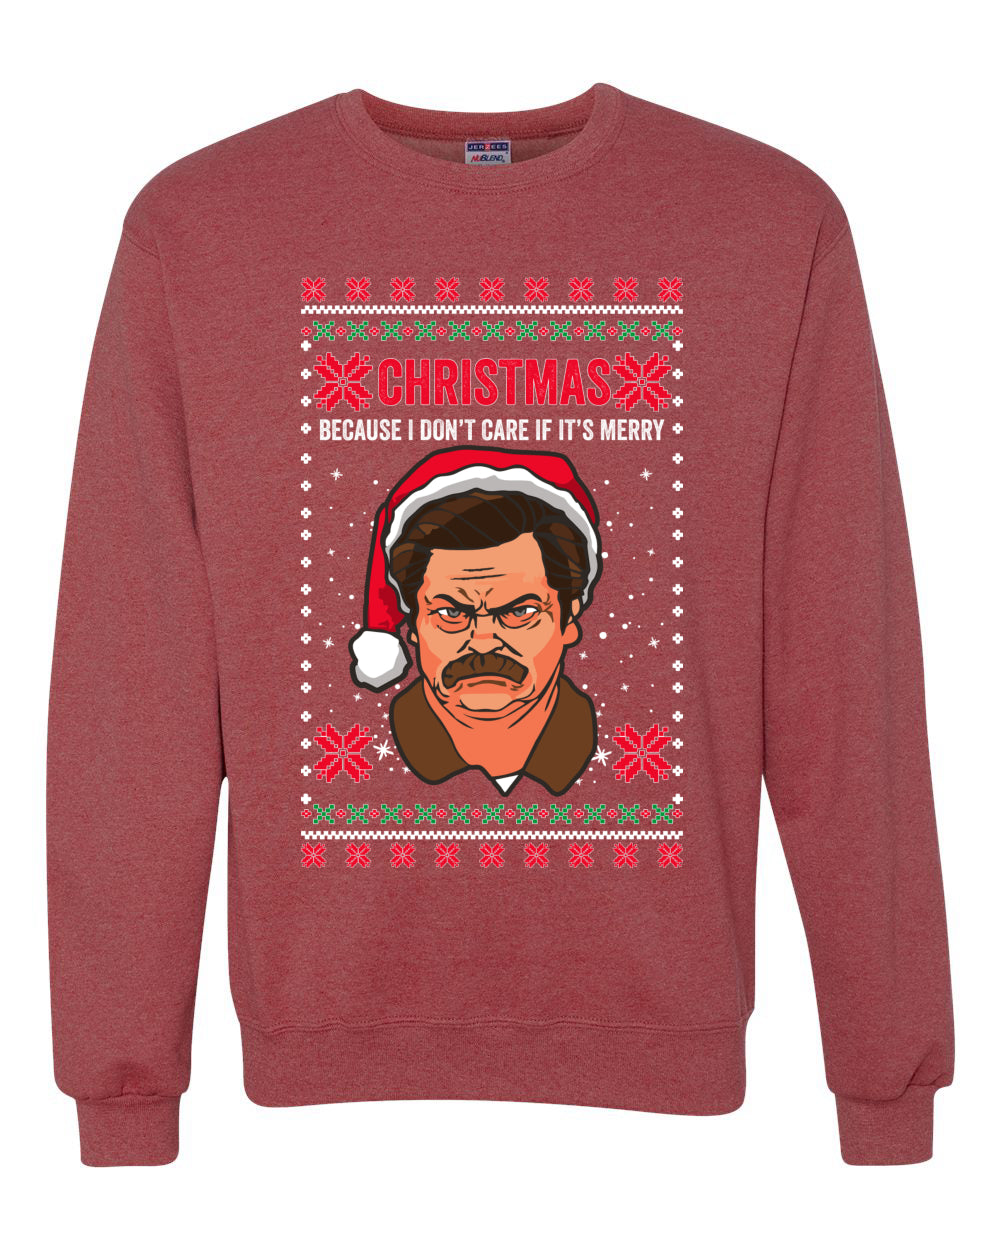 Funny Ron Swanson Parks and Rec Christmas I Don't Care if It's Merry Xmas Christmas Unisex Crewneck Graphic Sweatshirt